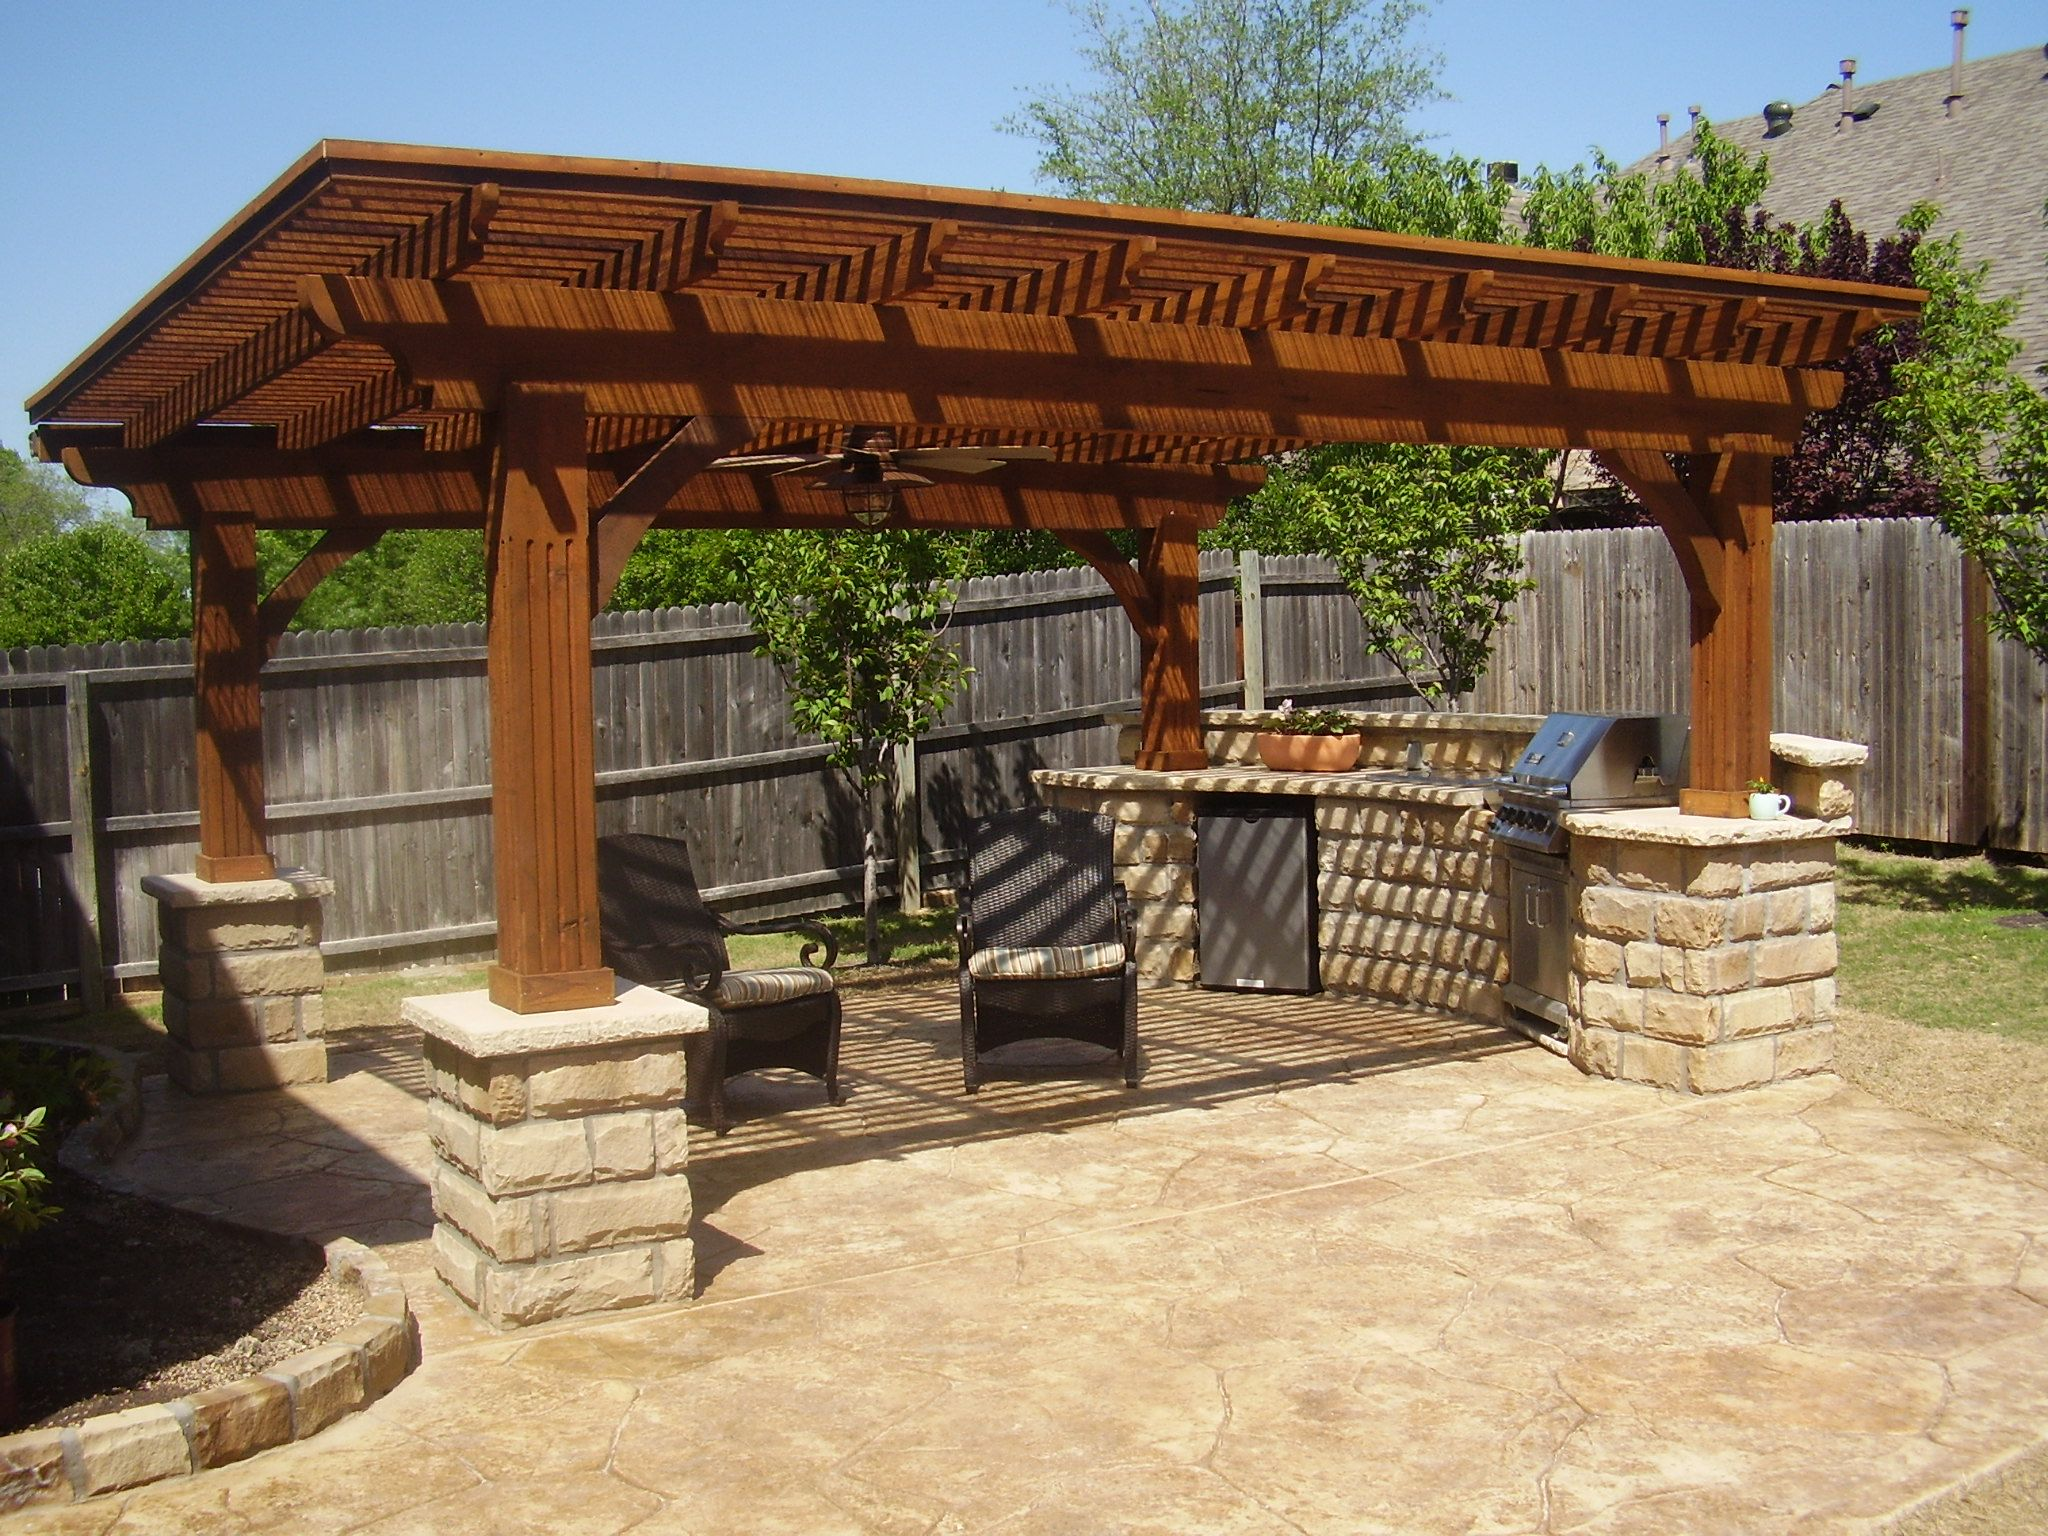 25 Inspiring Outdoor Patio Design Ideas  Outdoor Seating Areas New Outdoor Kitchen Pictures Design Ideas Decorating Inspiration